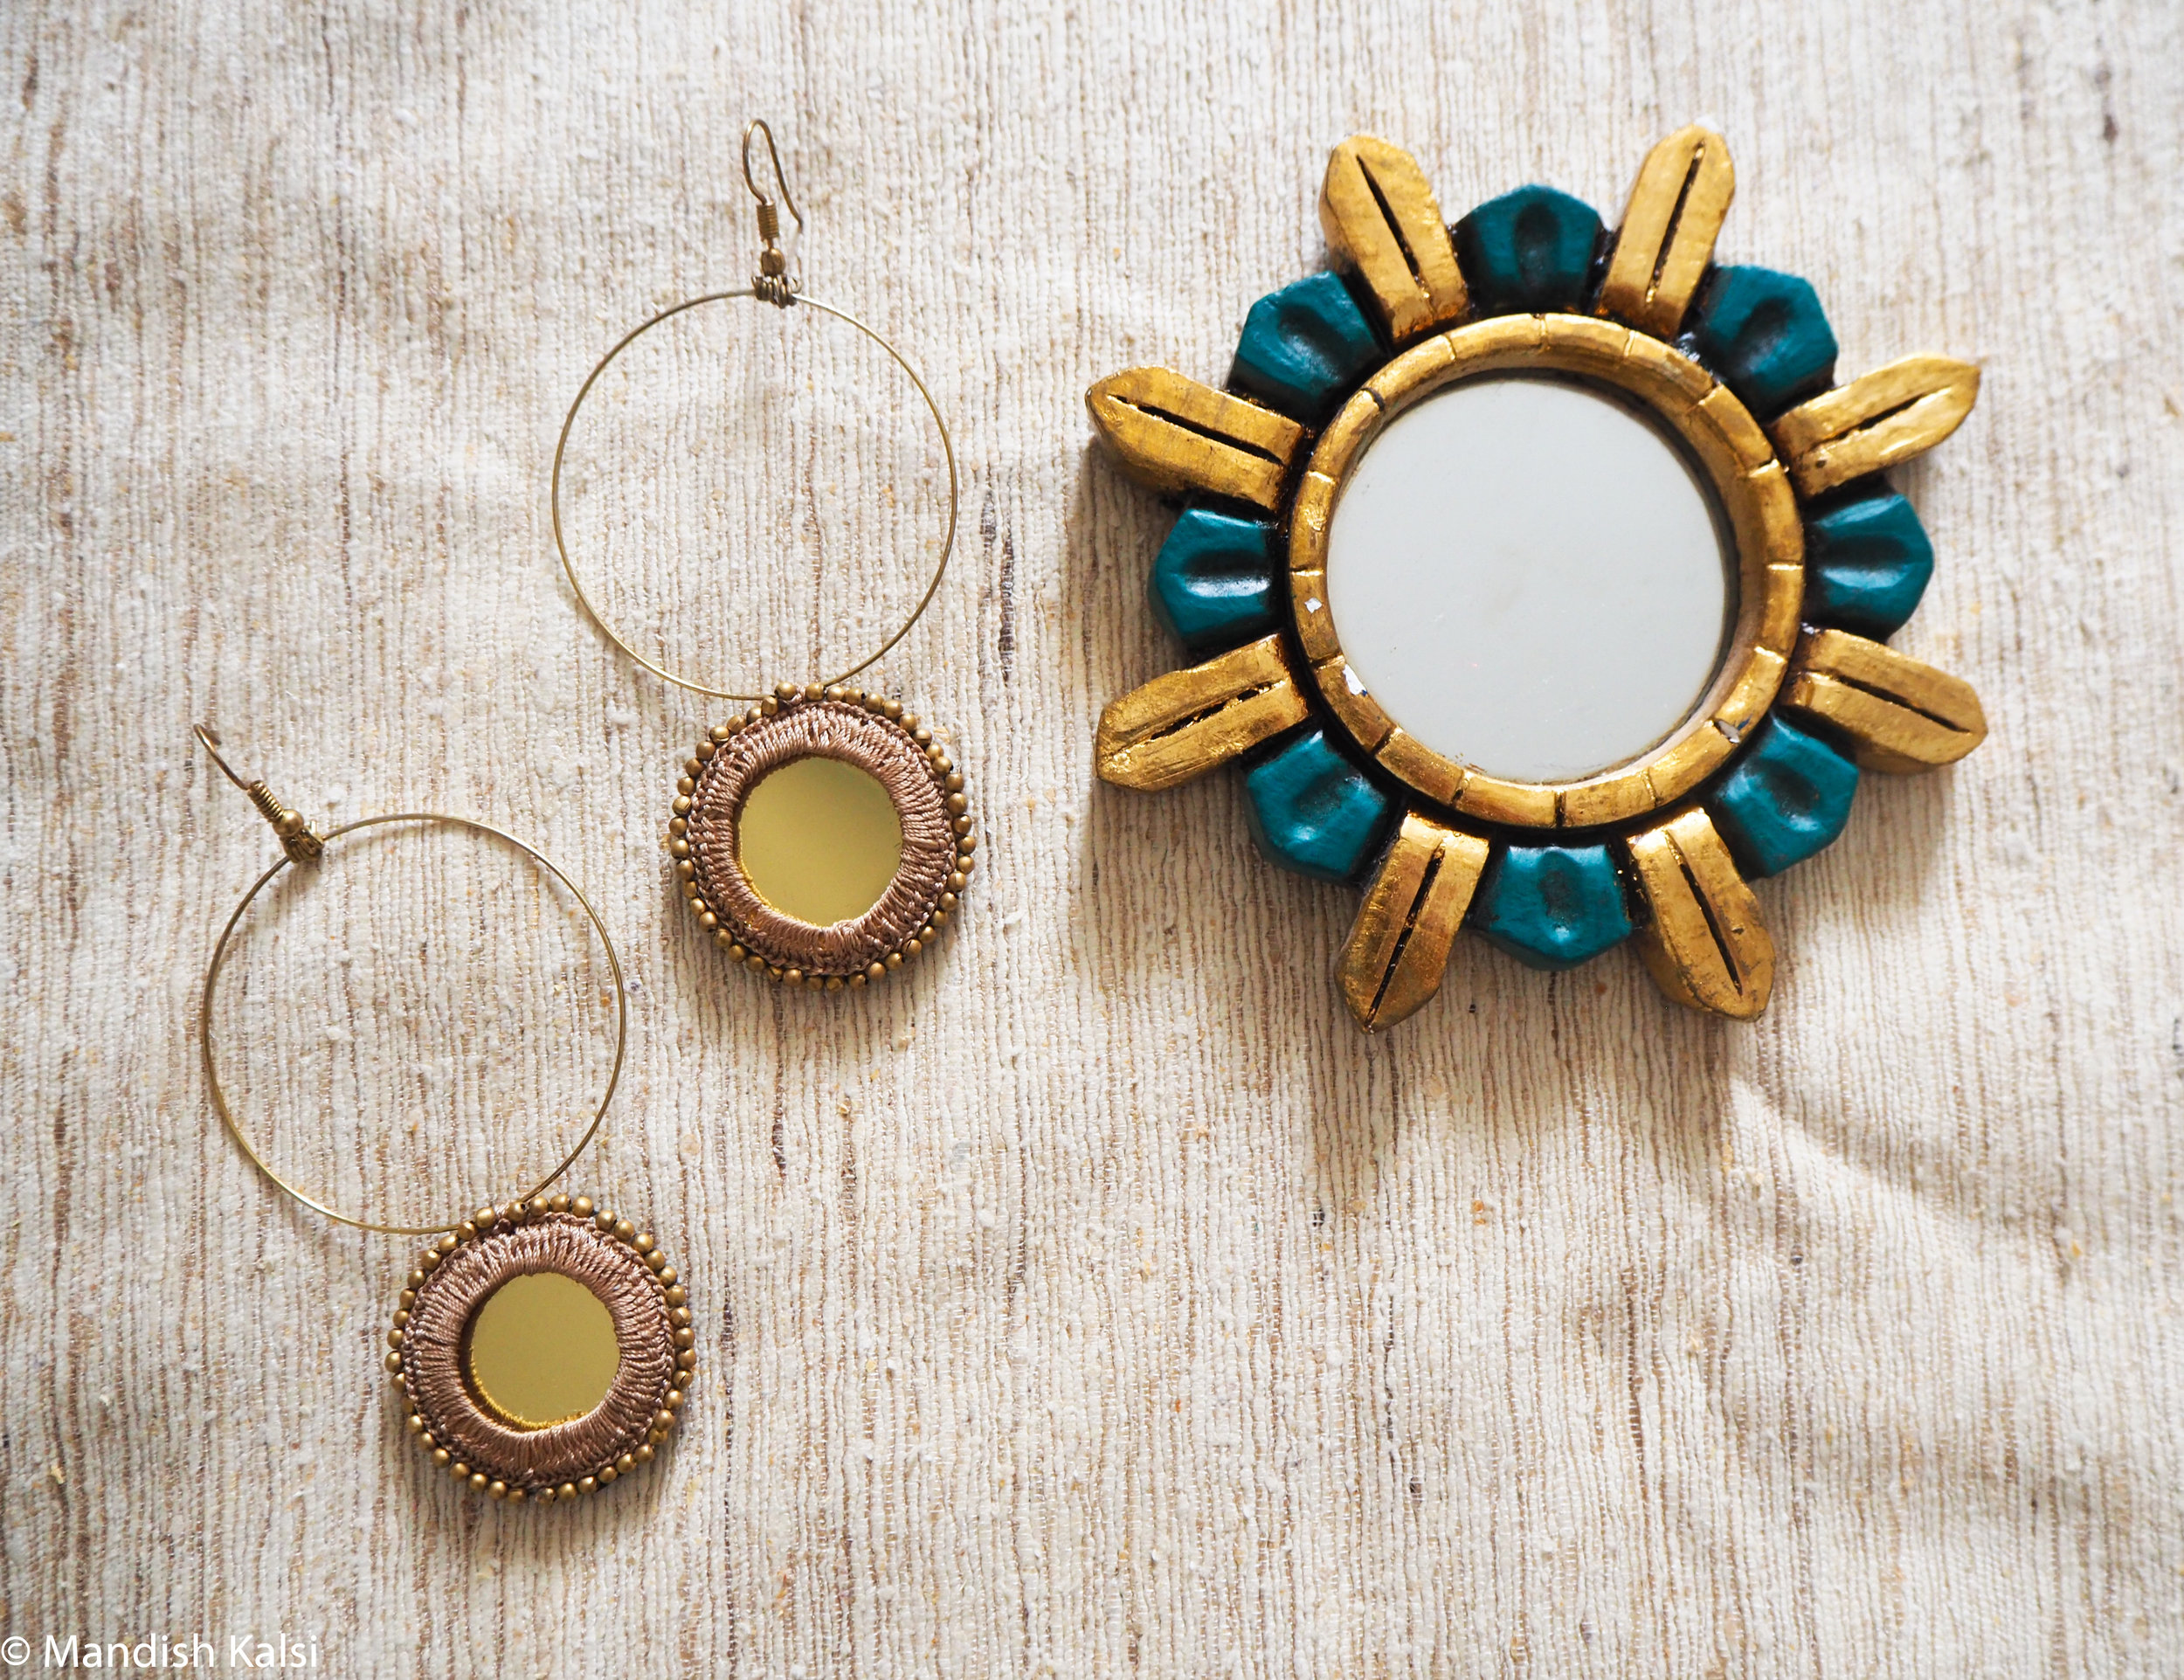 Aylah earrings  Embroidered mirrors with brass beads on brass hoops.